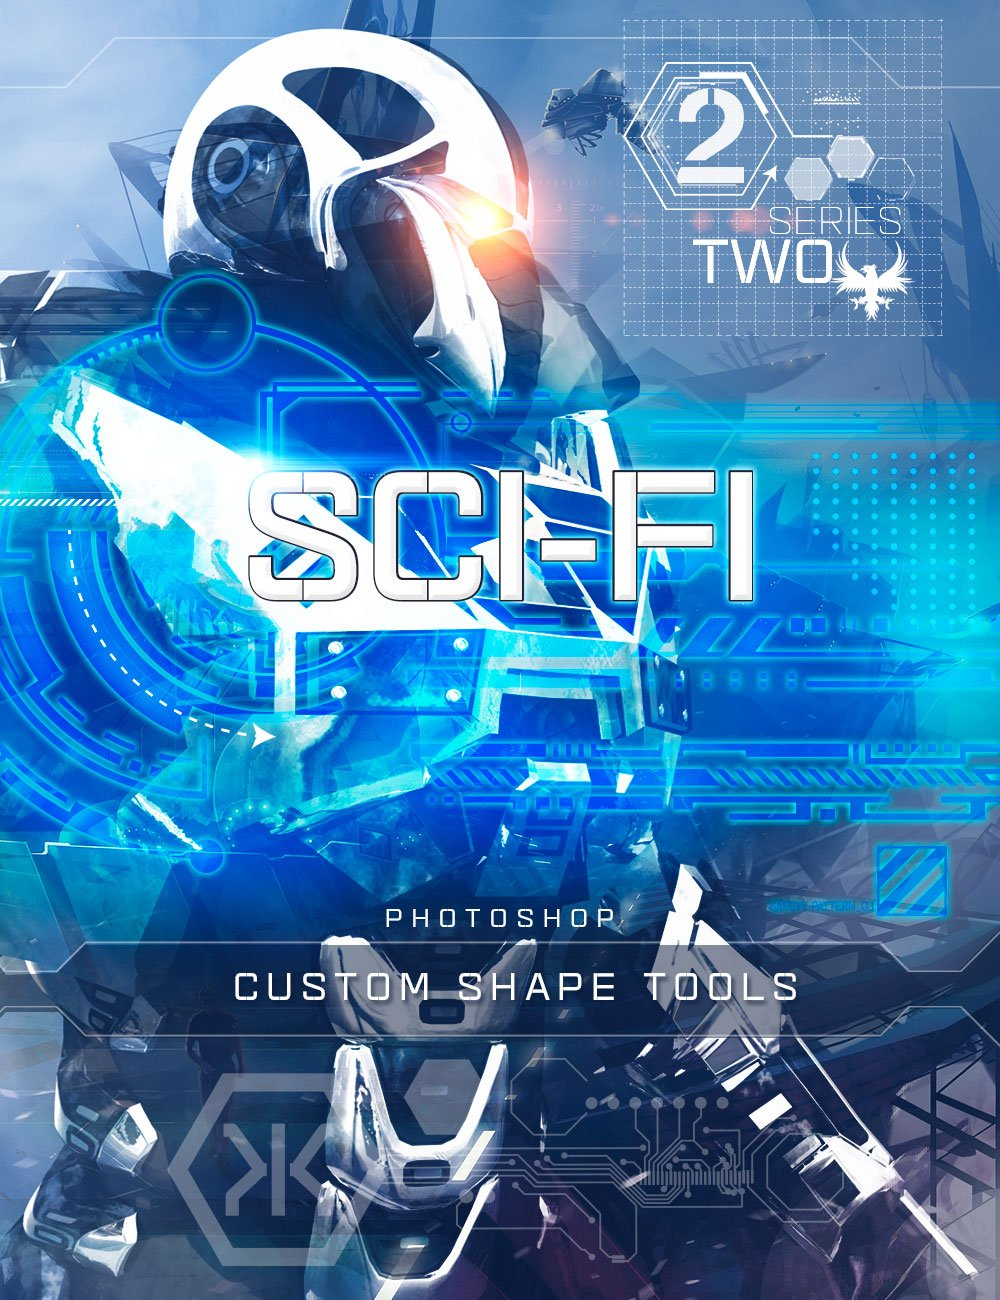 Ron's Sci-Fi Custom Shapes Series 2 by: deviney, 3D Models by Daz 3D